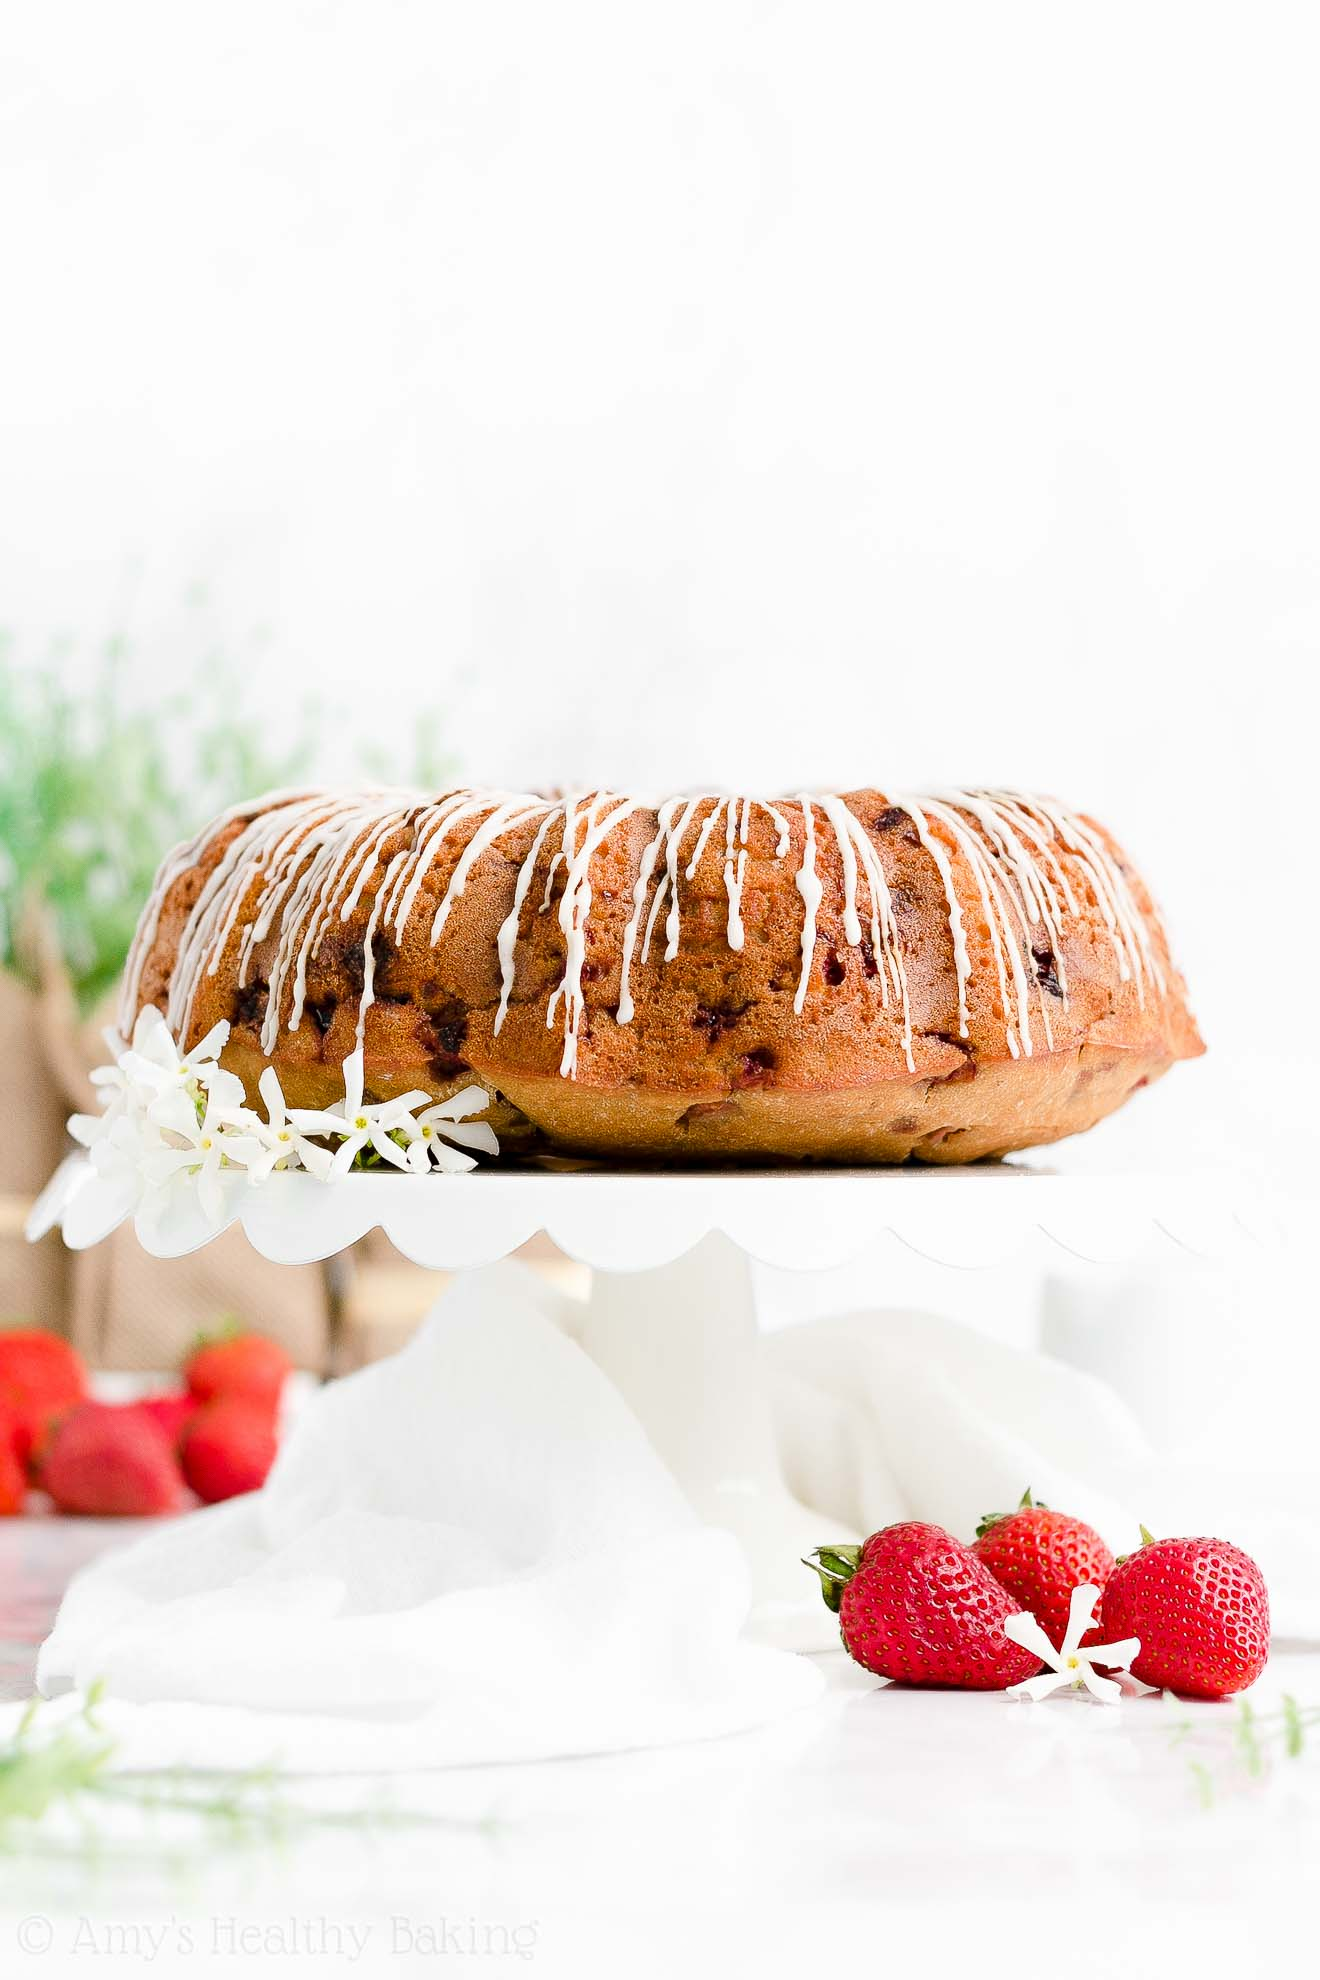 Easy Healthy No Sugar Low Fat Low Calorie Moist Fresh Strawberry Bundt Cake